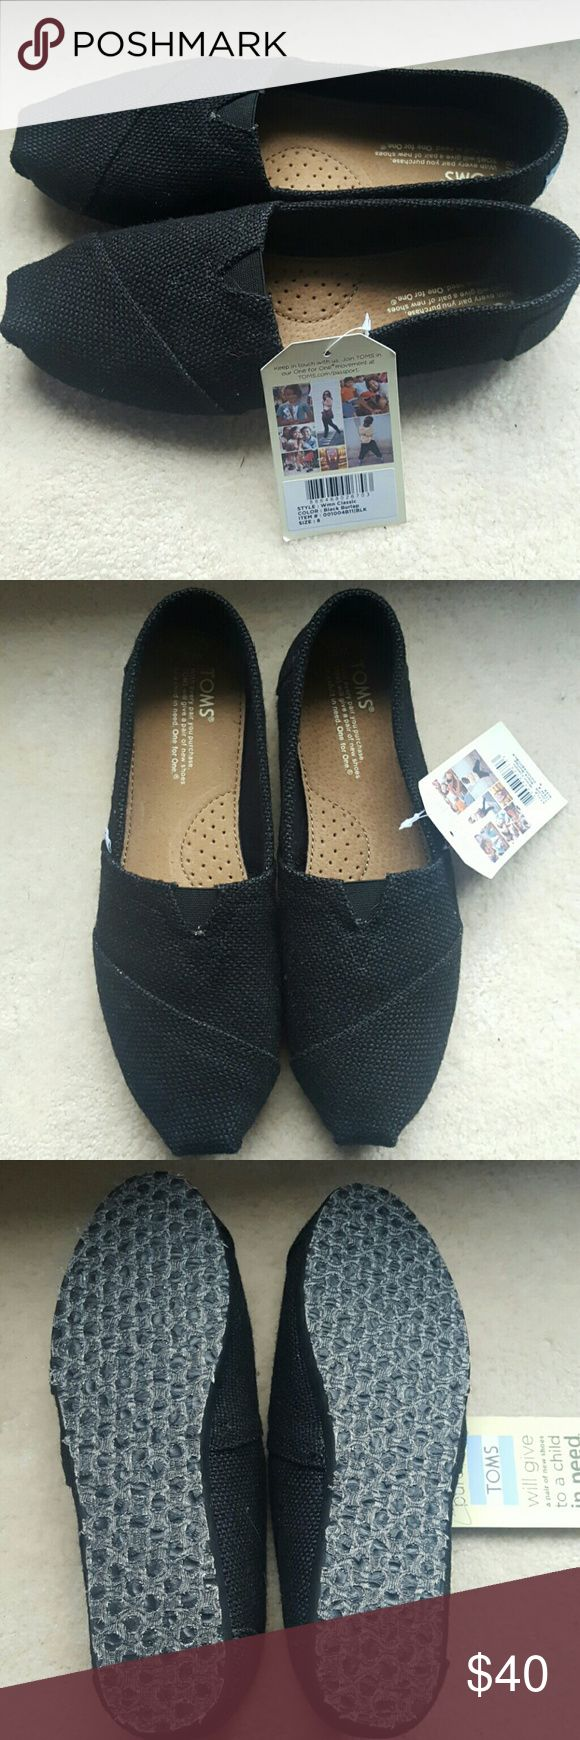 Black Burlap Toms Slipons NWT Size 8 black Burlap Toms, New With Tags, Never Worn TOMS Shoes Flats & Loafers